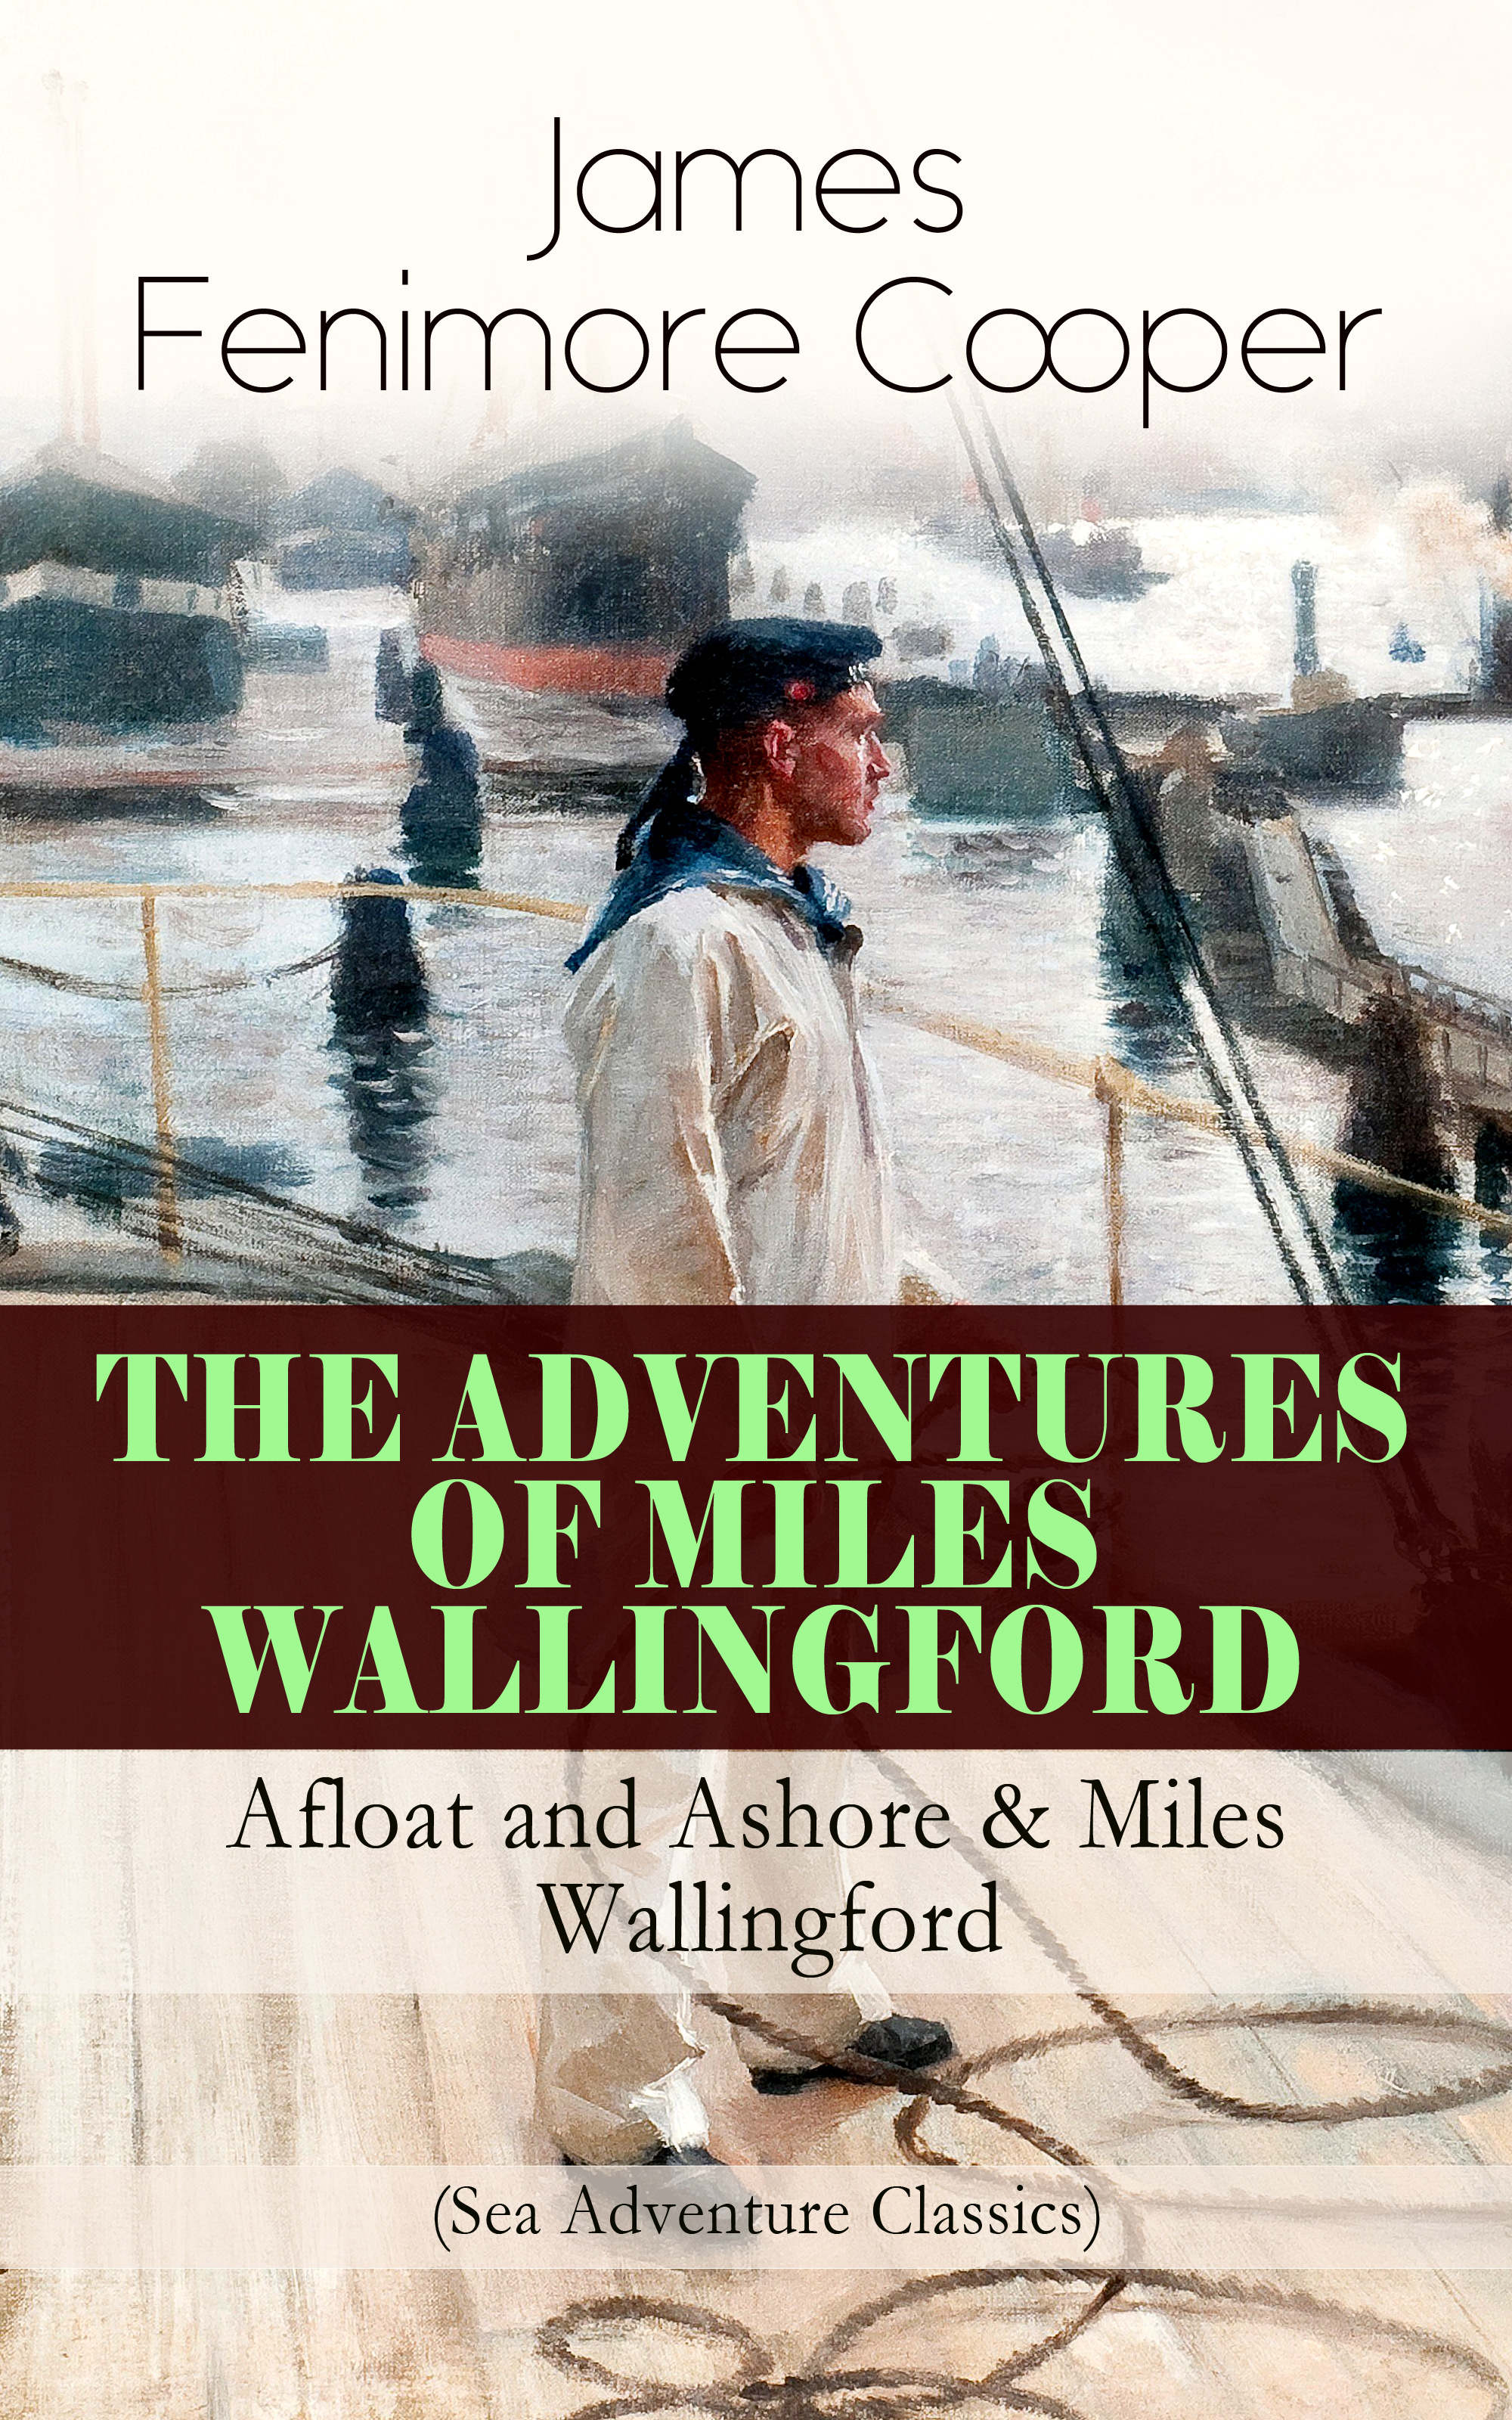 Джеймс Фенимор Купер THE ADVENTURES OF MILES WALLINGFORD: Afloat and Ashore & Miles Wallingford (Sea Adventure Classics) barry w miles iii moody k miles abstracts of the wills and administrations of accomack county virginia 1800 1860